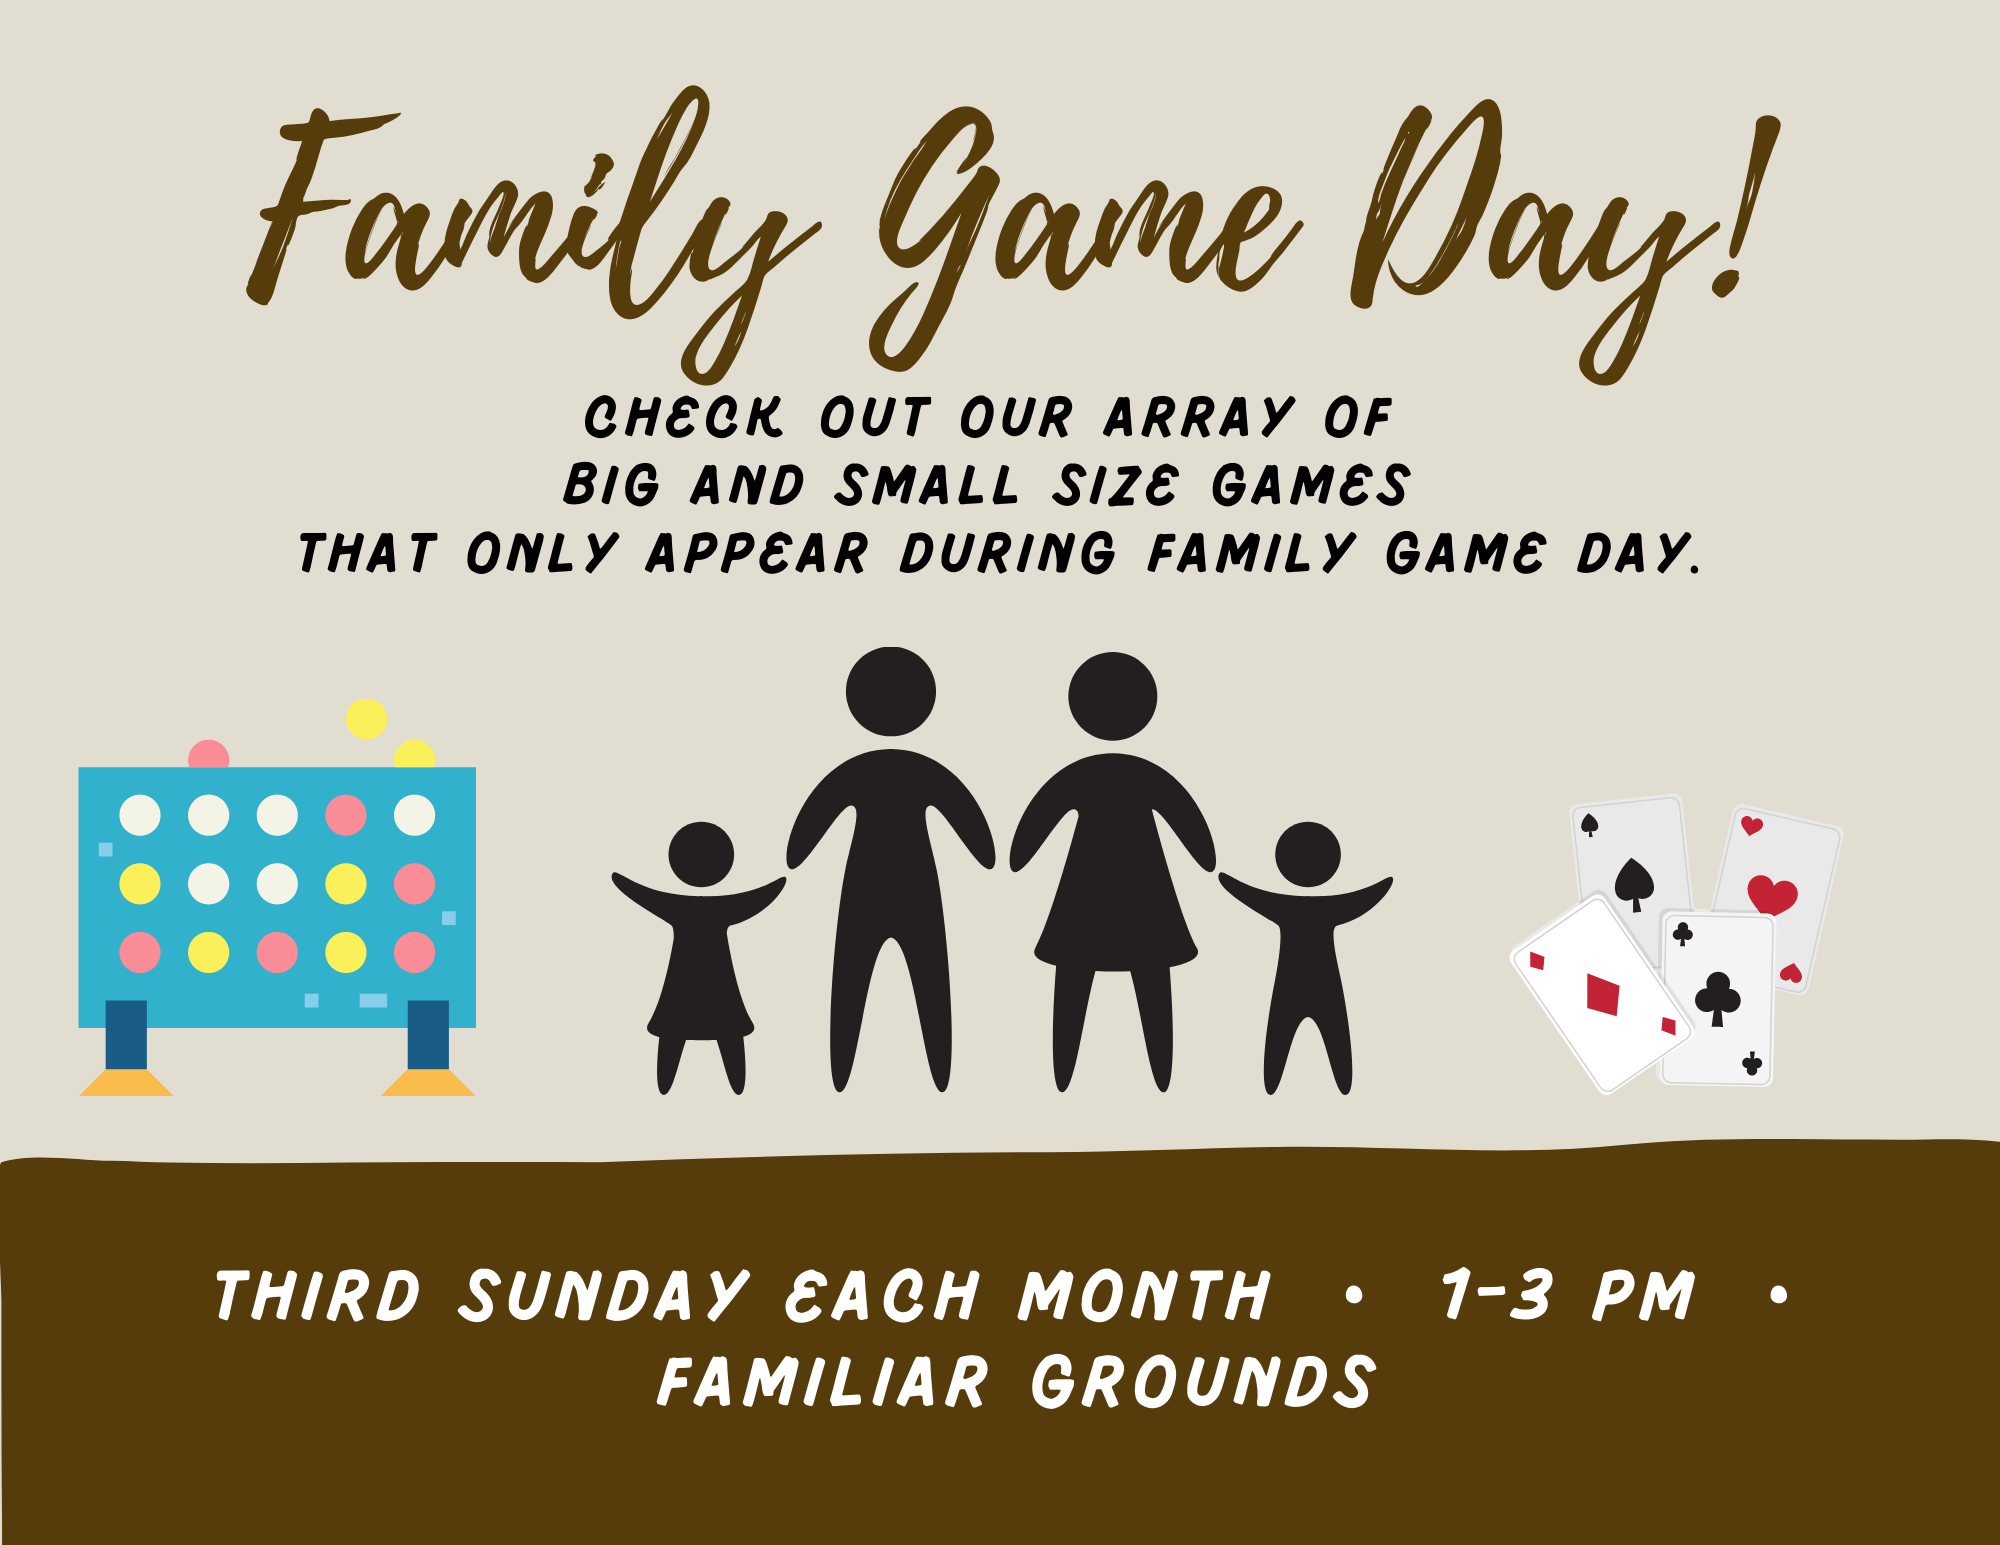 Familiar Grounds Game Day